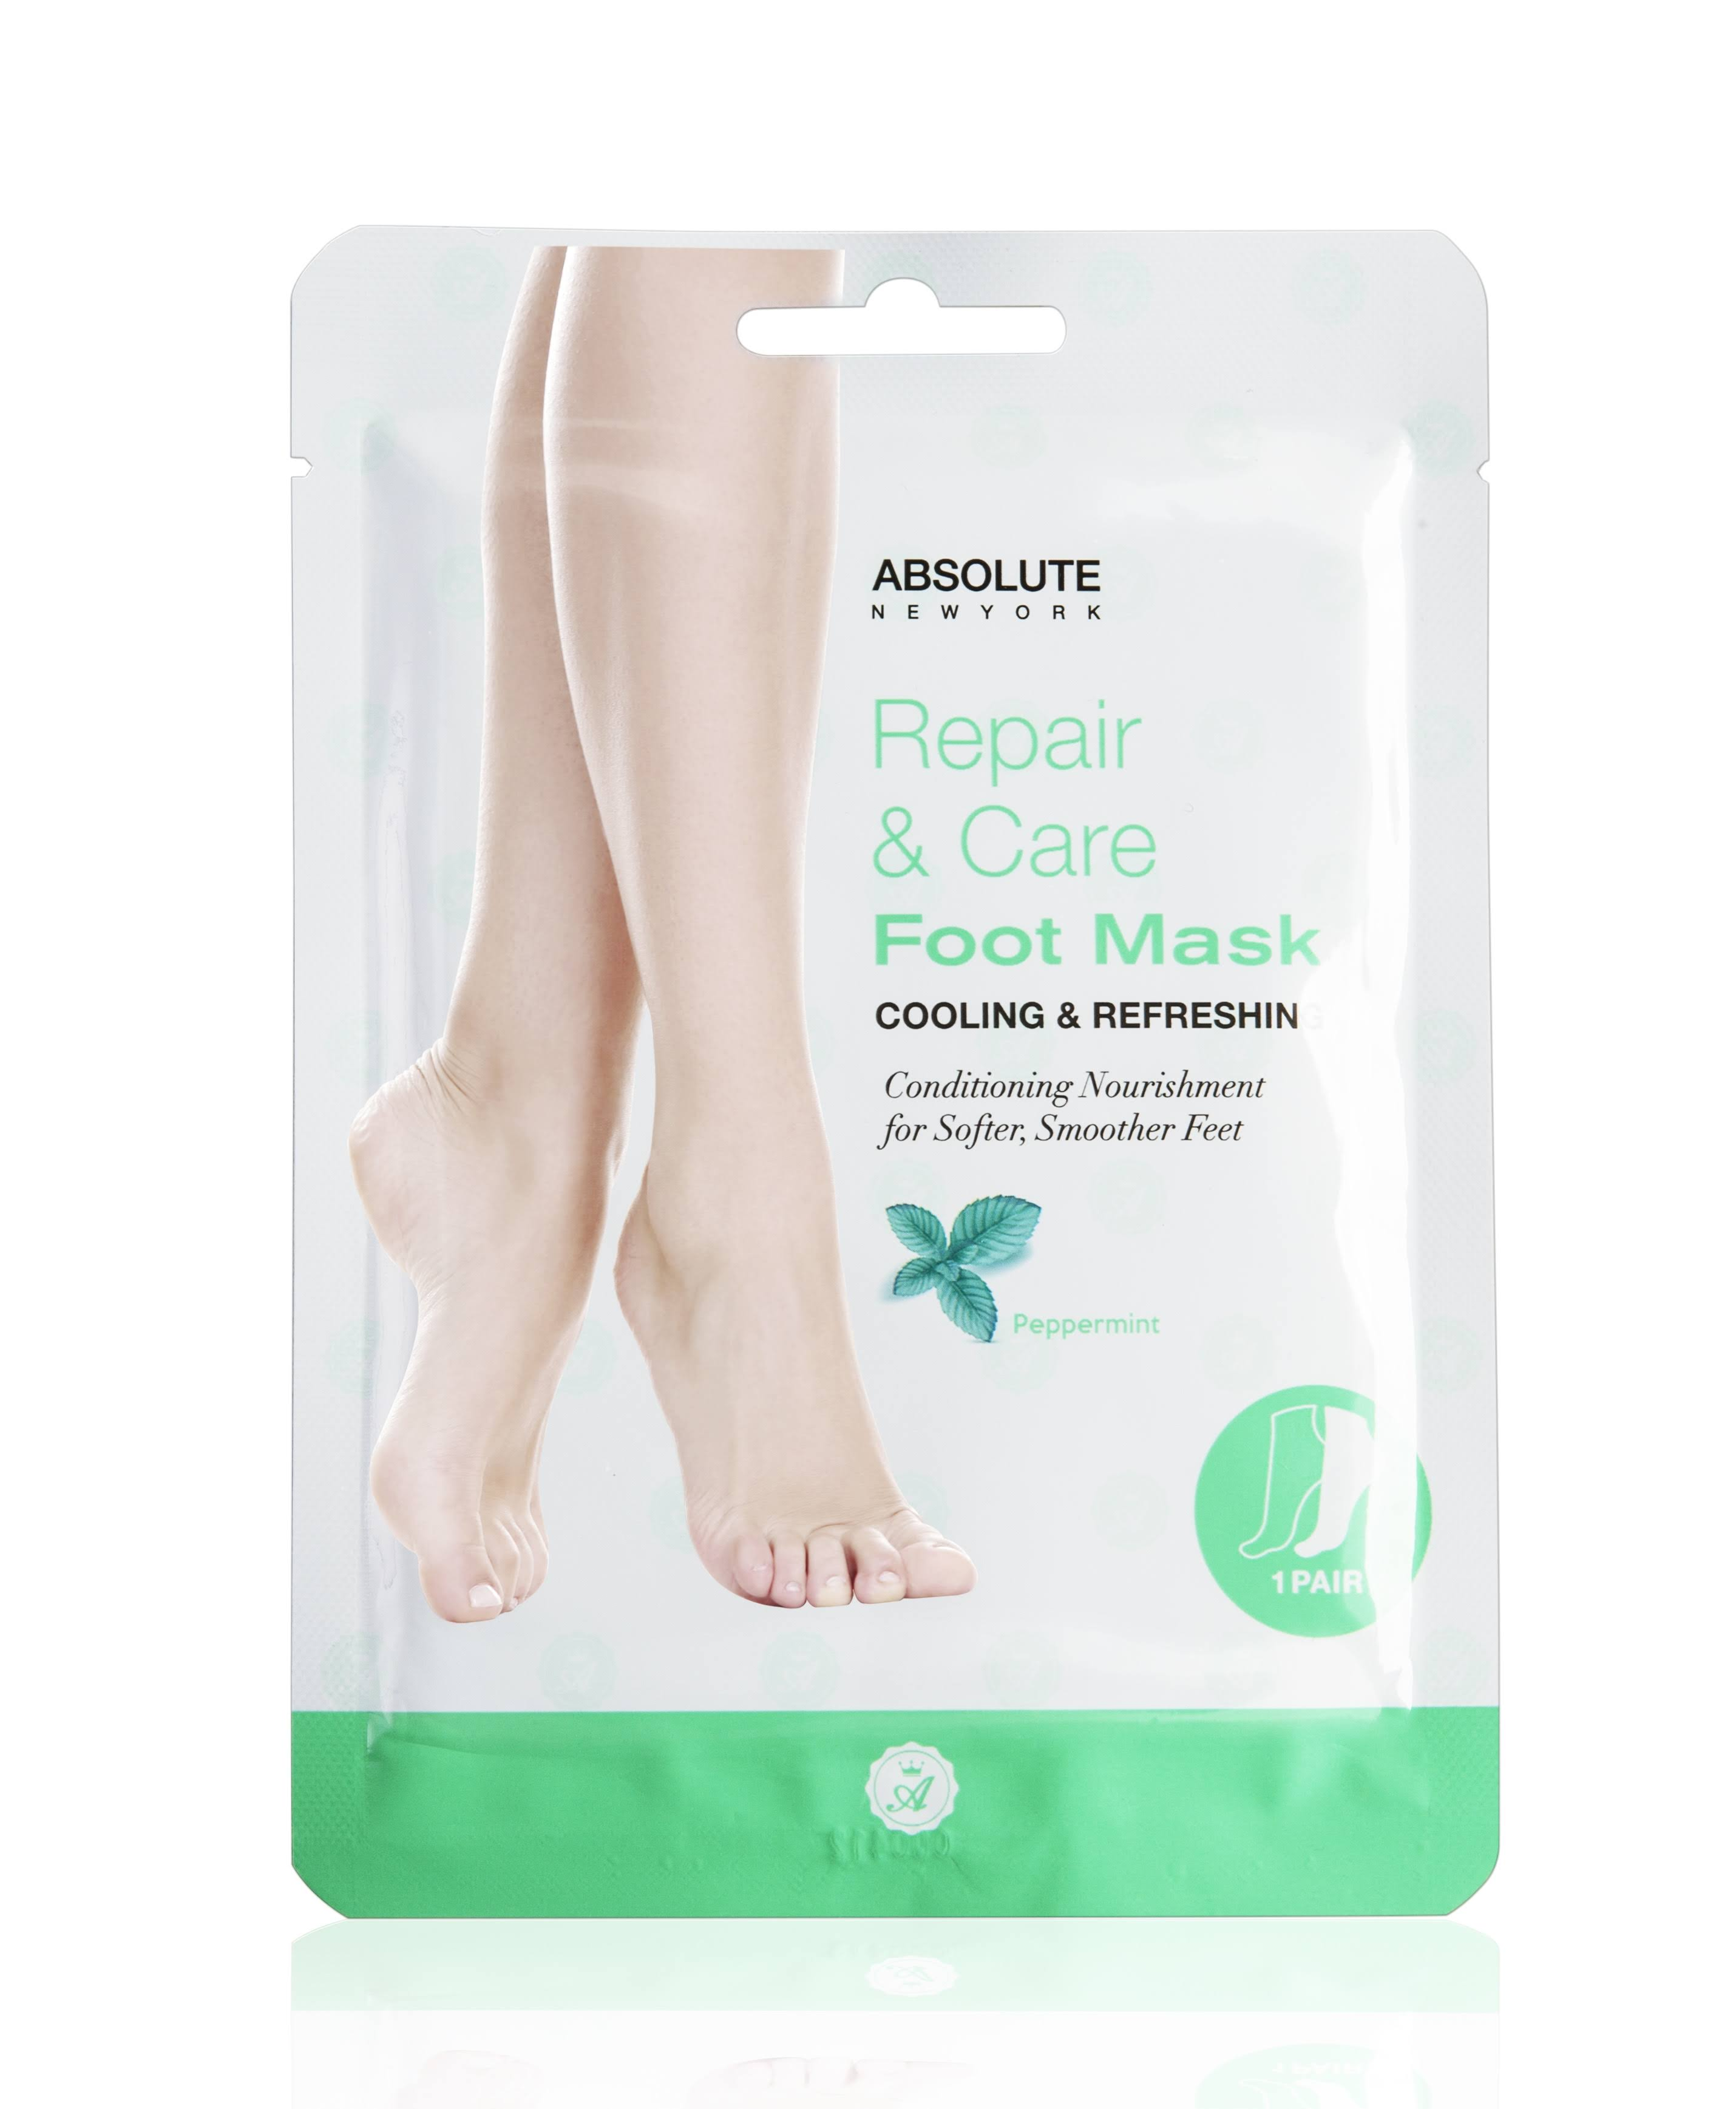 Absolute Repair & Care Foot Mask - Peppermint